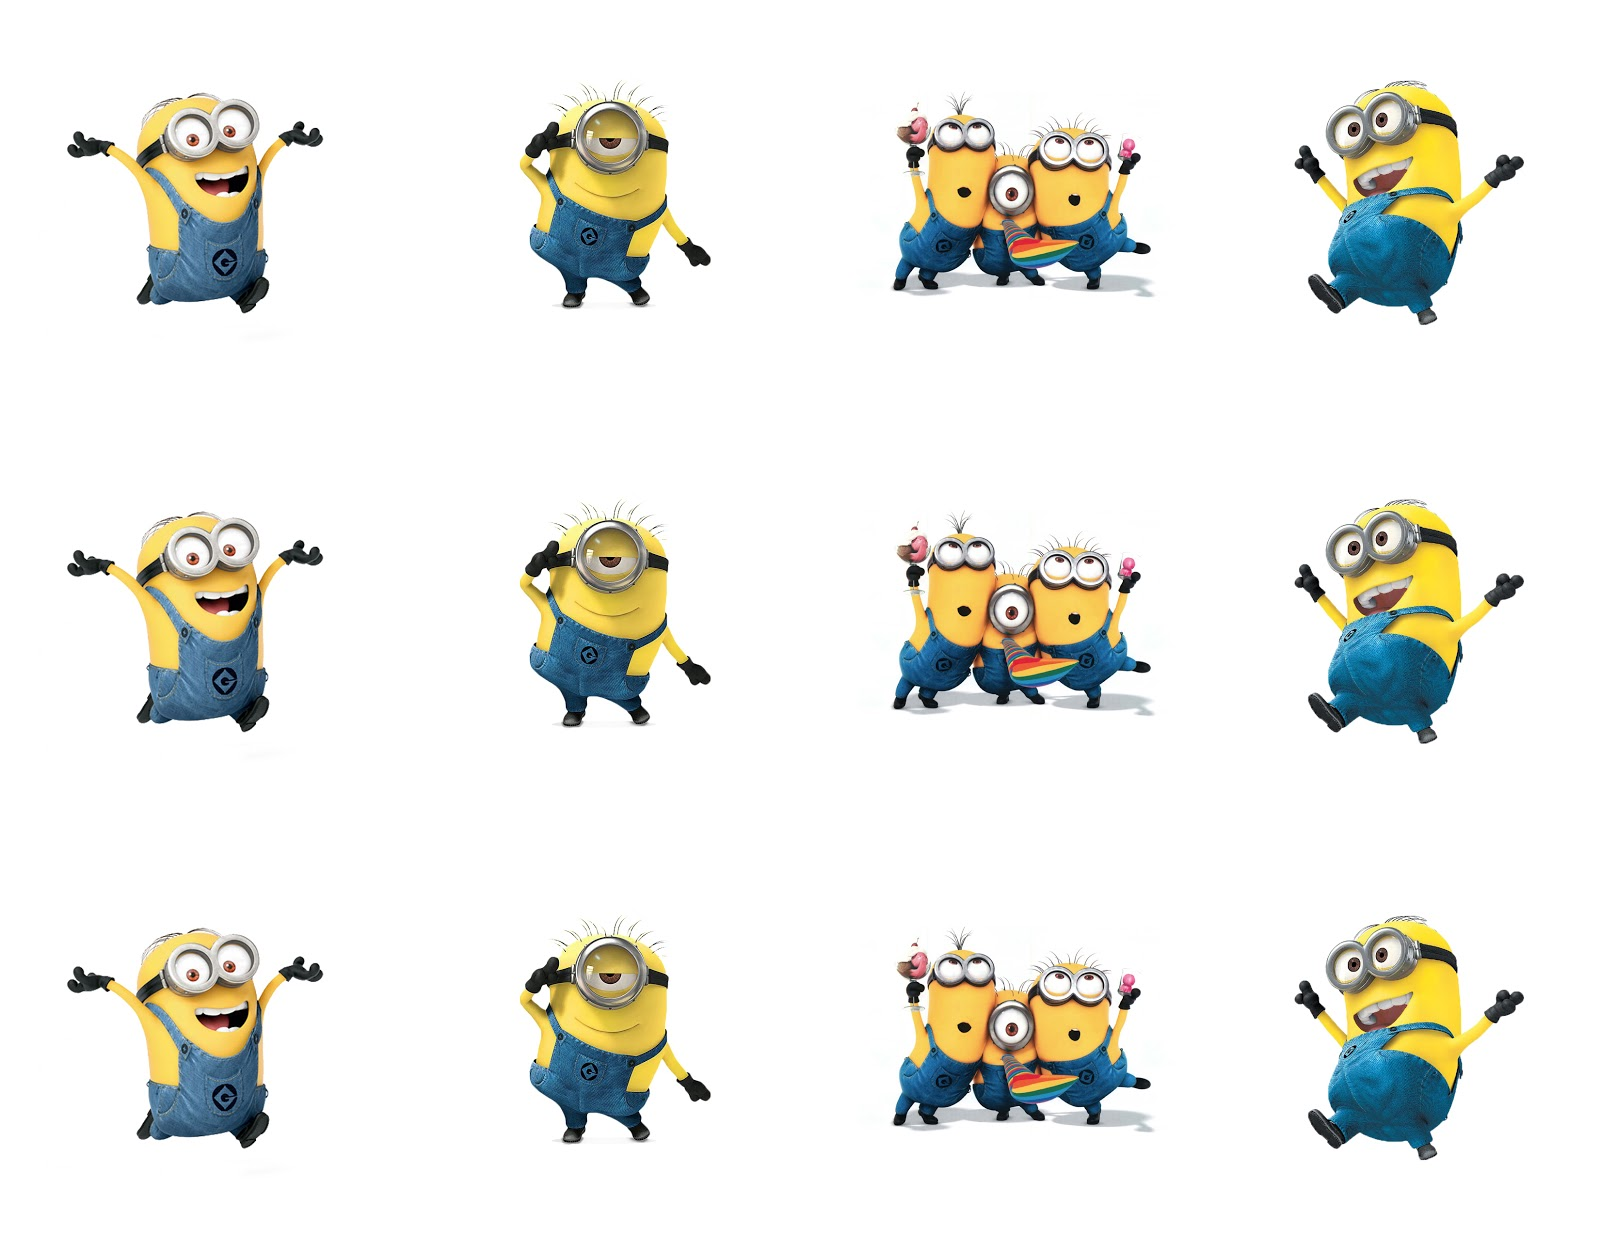 Cool Minion Goggles Template Gallery Entry Level Resume Templates - Cupcake name tag template